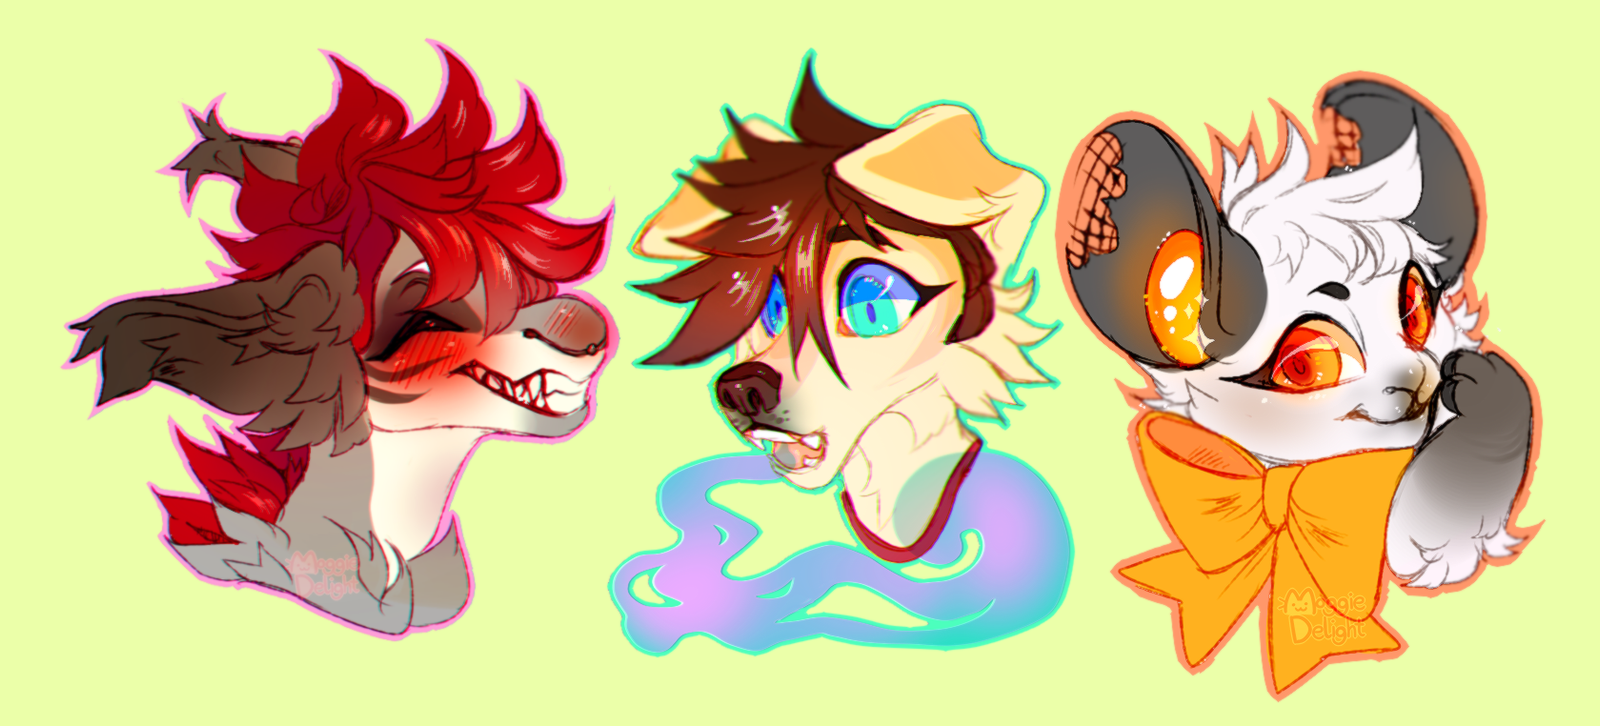 Headshot Commissions 1 by MoggieDelight